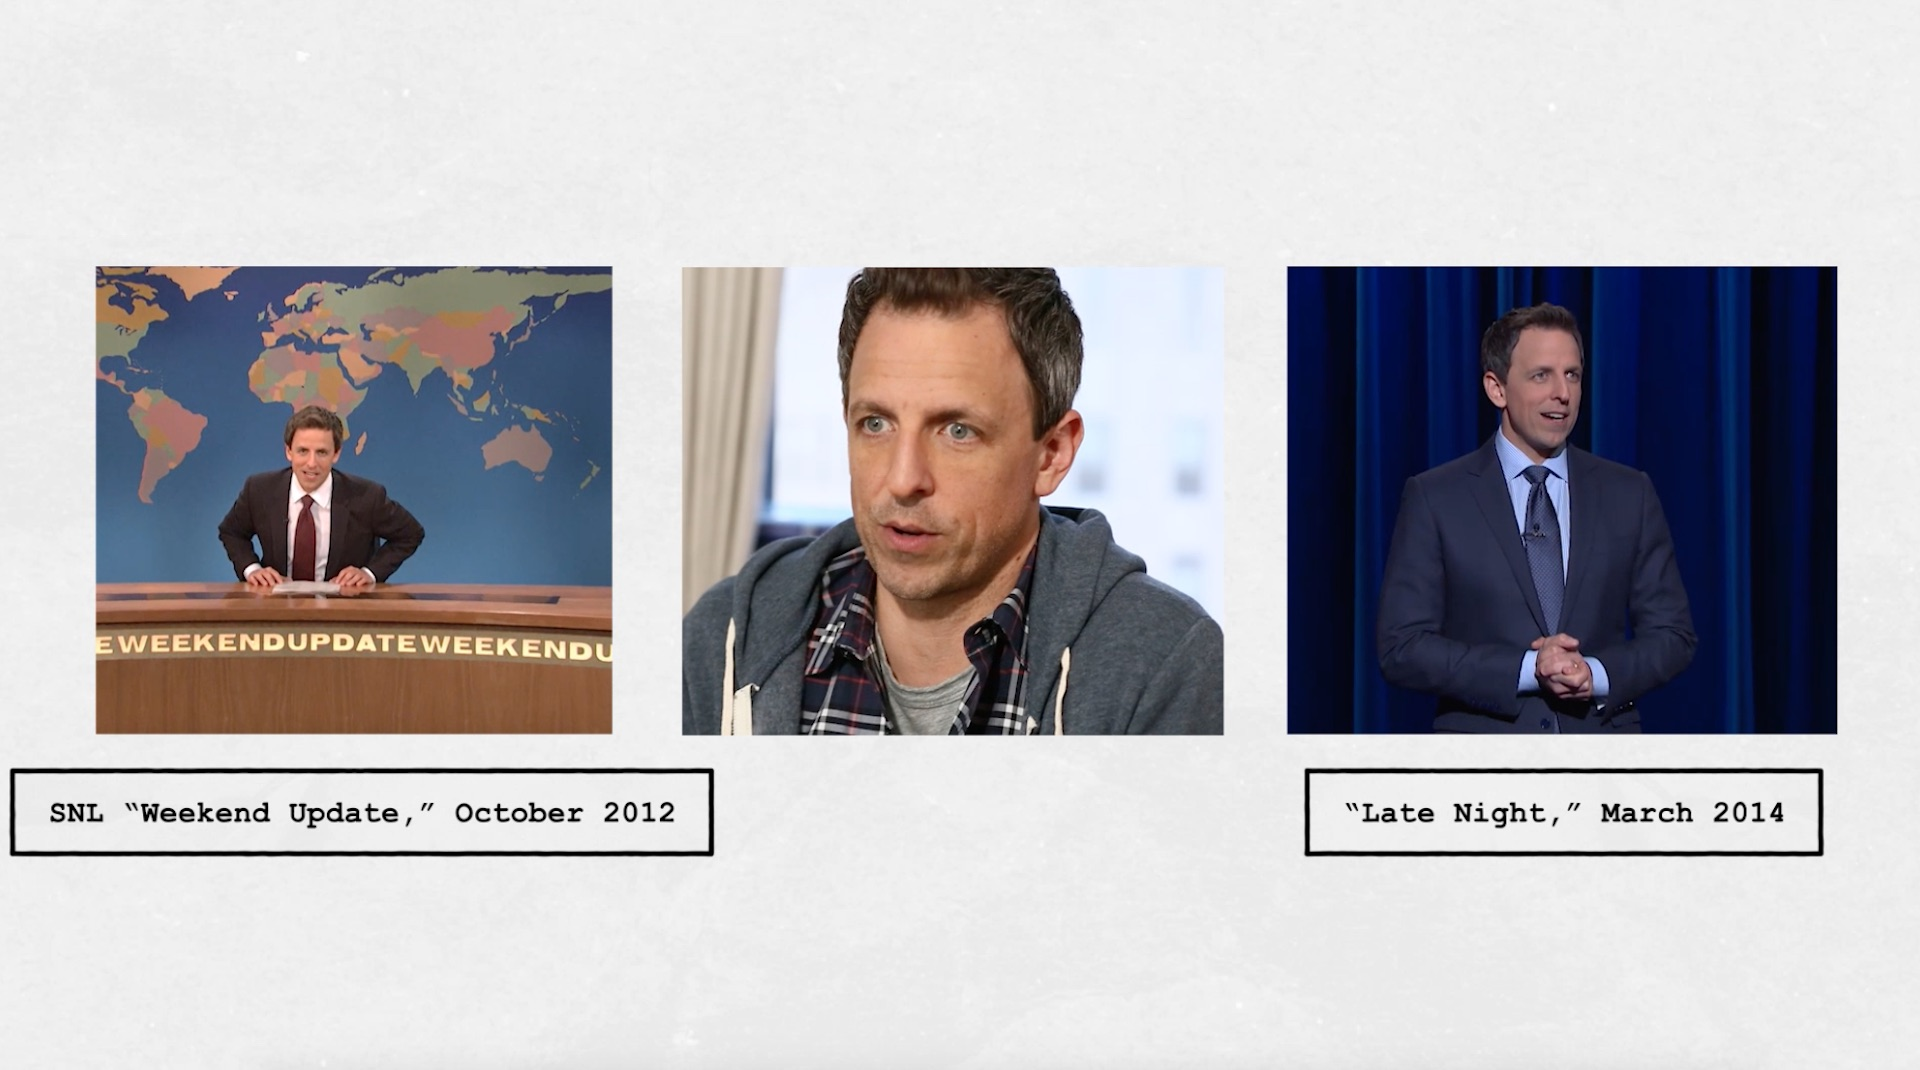 Seth Meyers makes a triumphant return to SNL's 'Weekend Update'; Michael Che drops the n-word